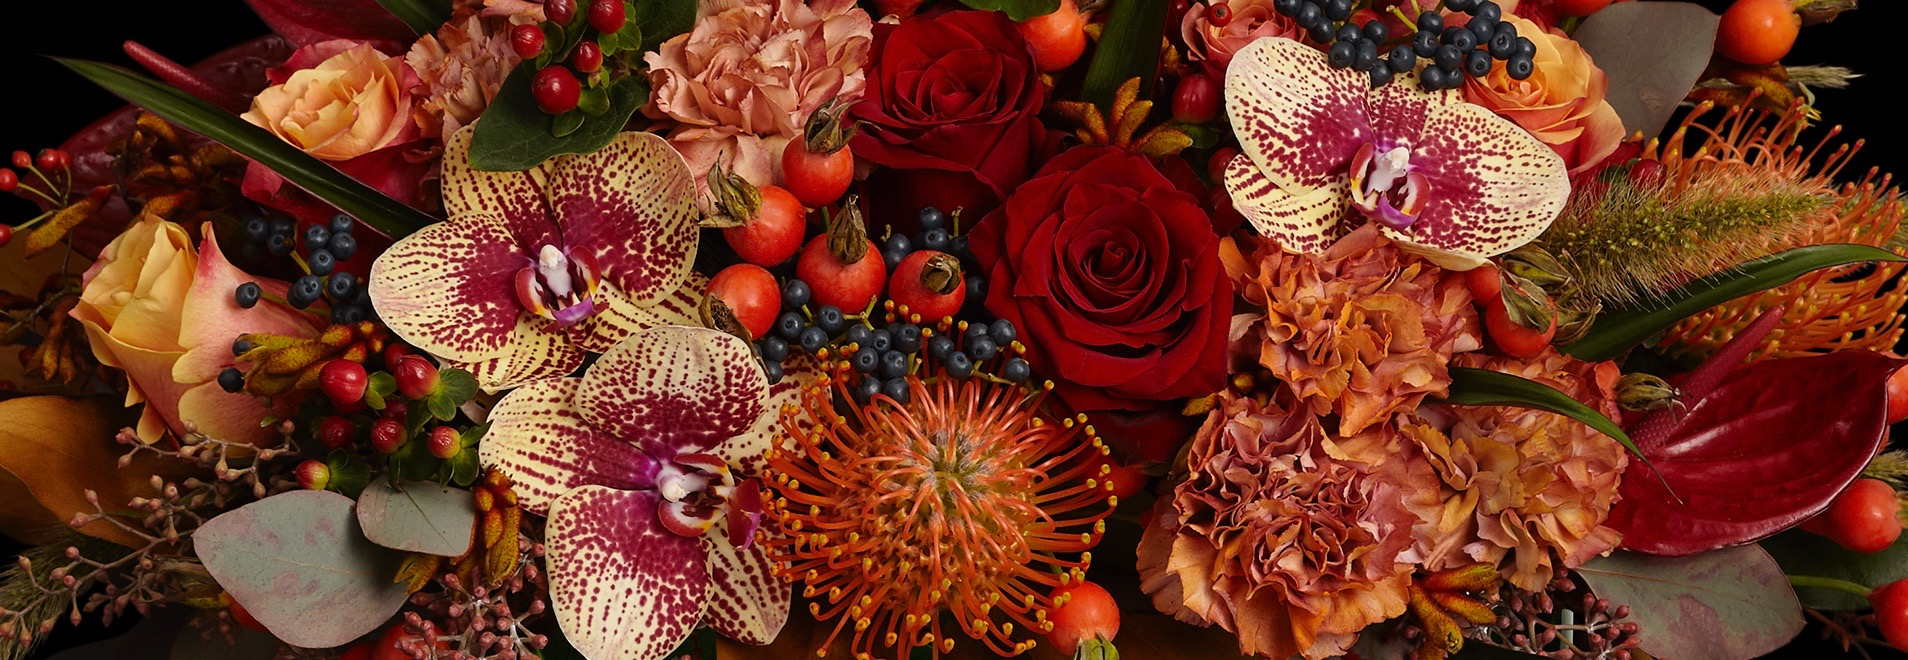 Neill Strain Floral Couture Autumn Flowers